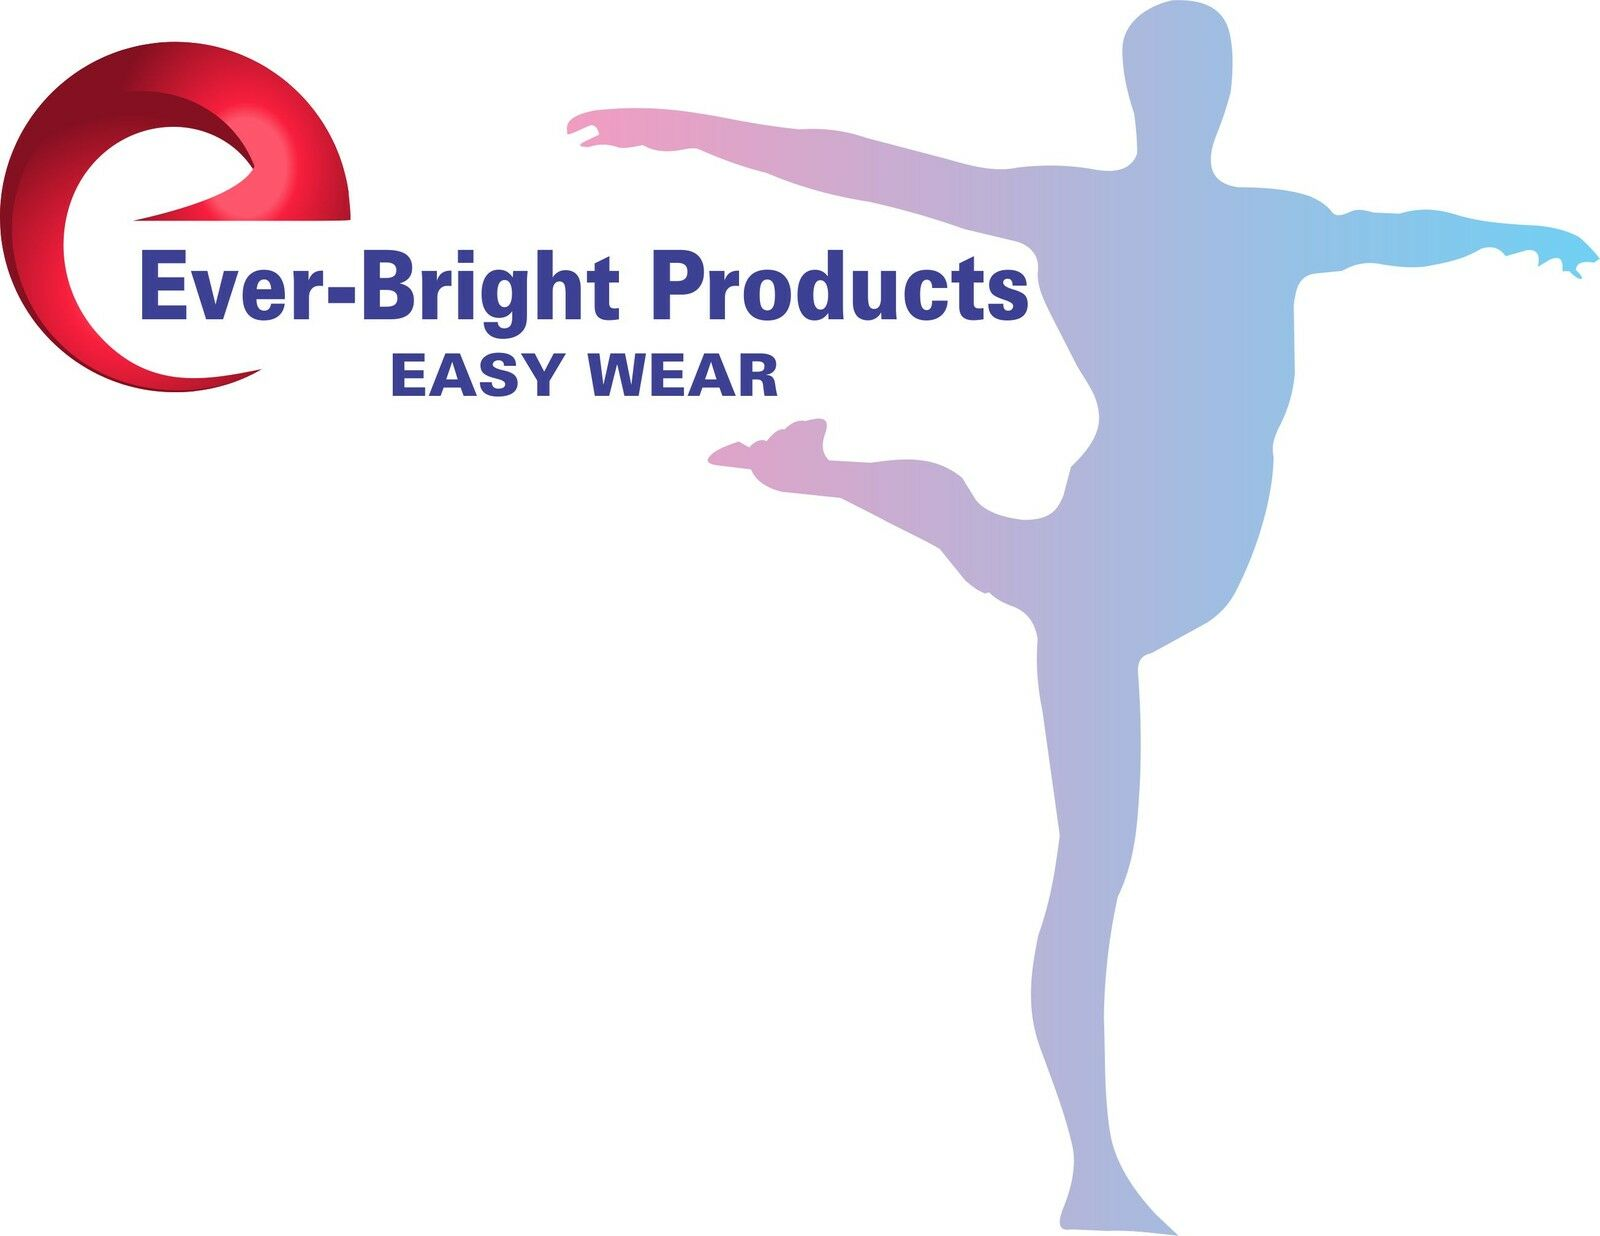 Ever-Bright Products